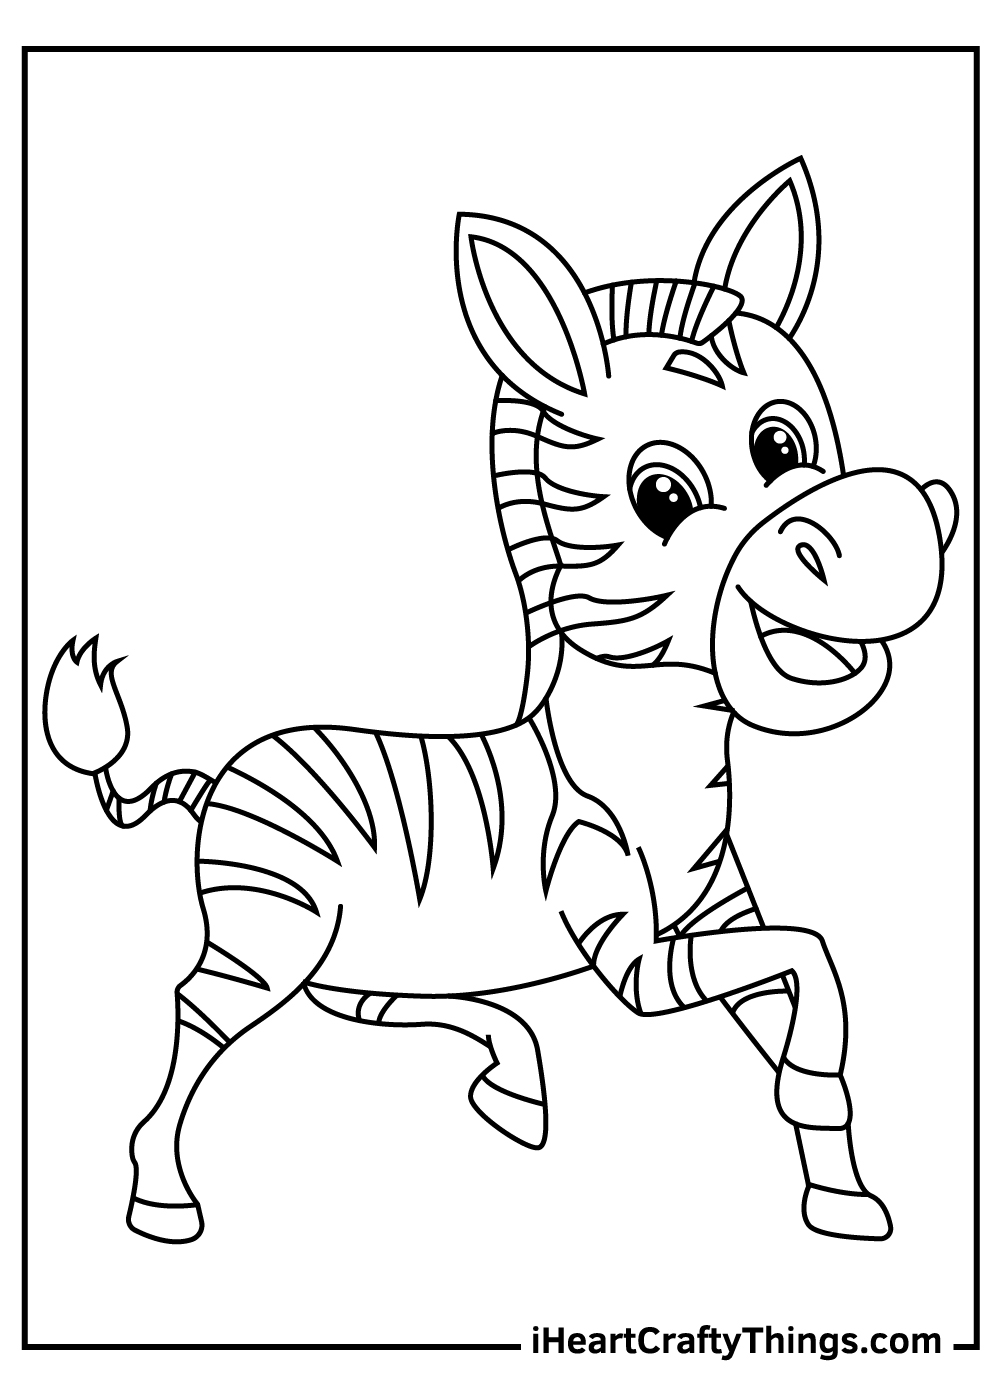 cute cartoon zebra coloring pagesfor kids